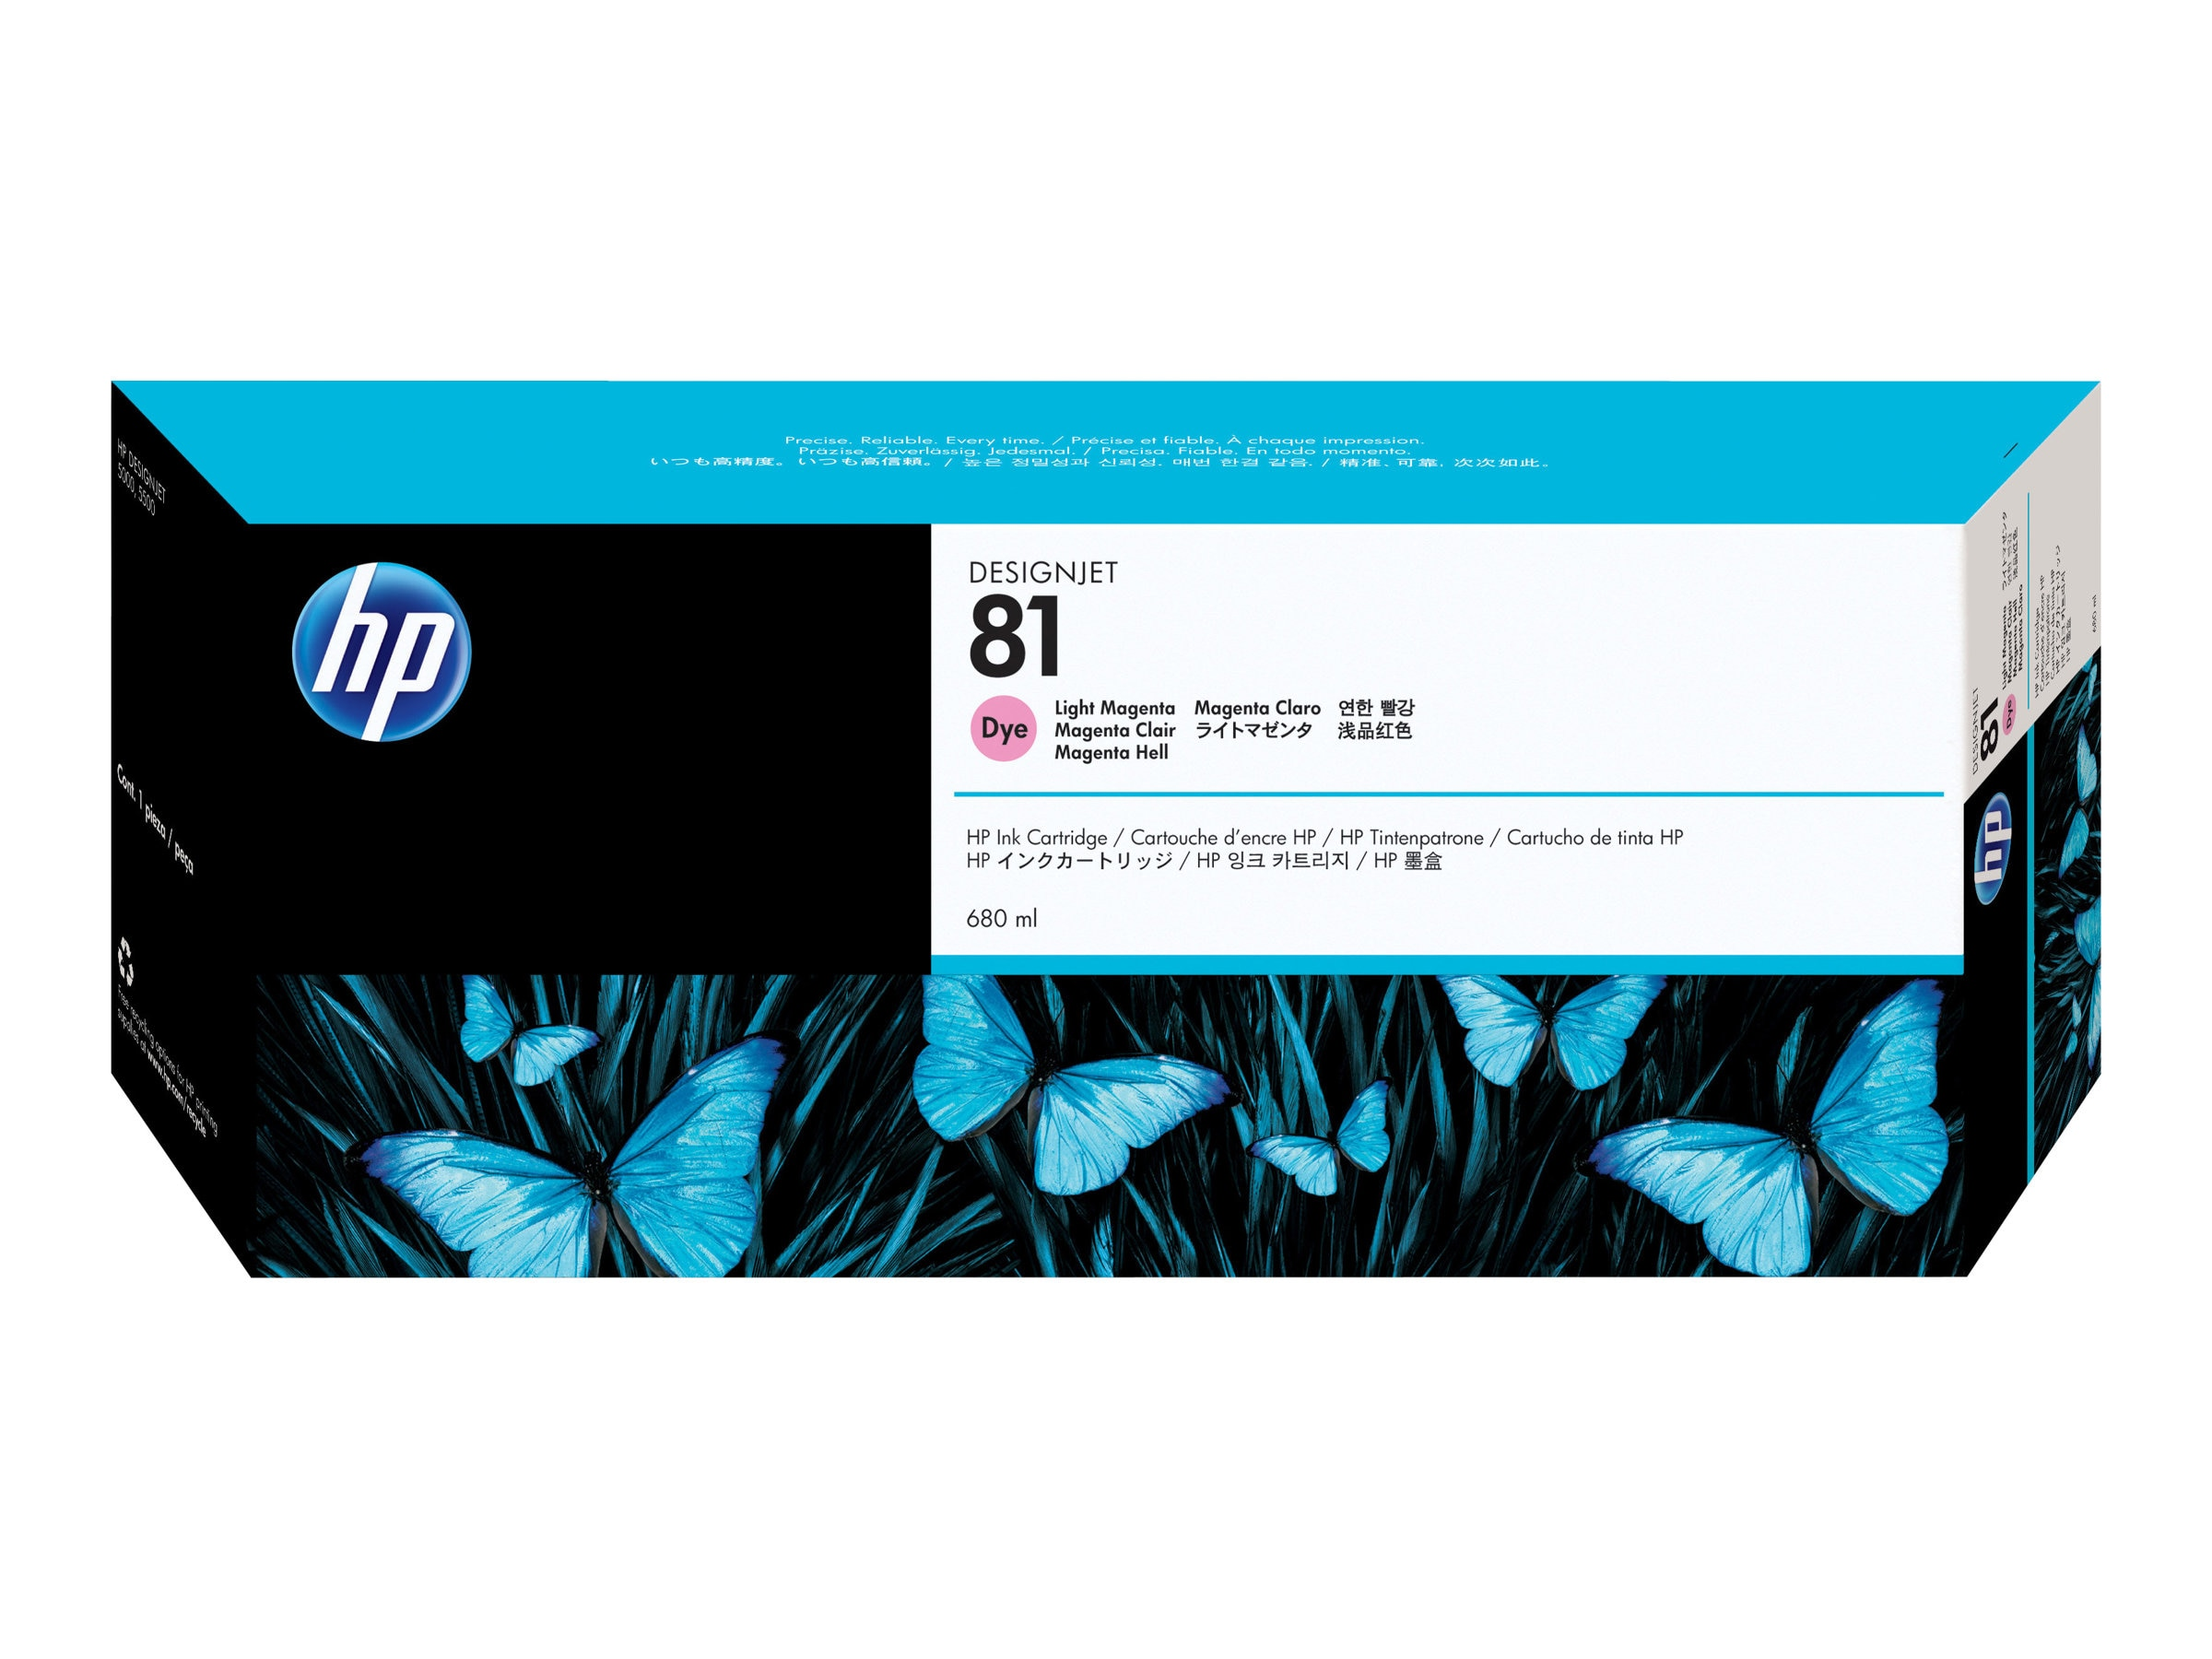 HP Inc. C4935A Image 1